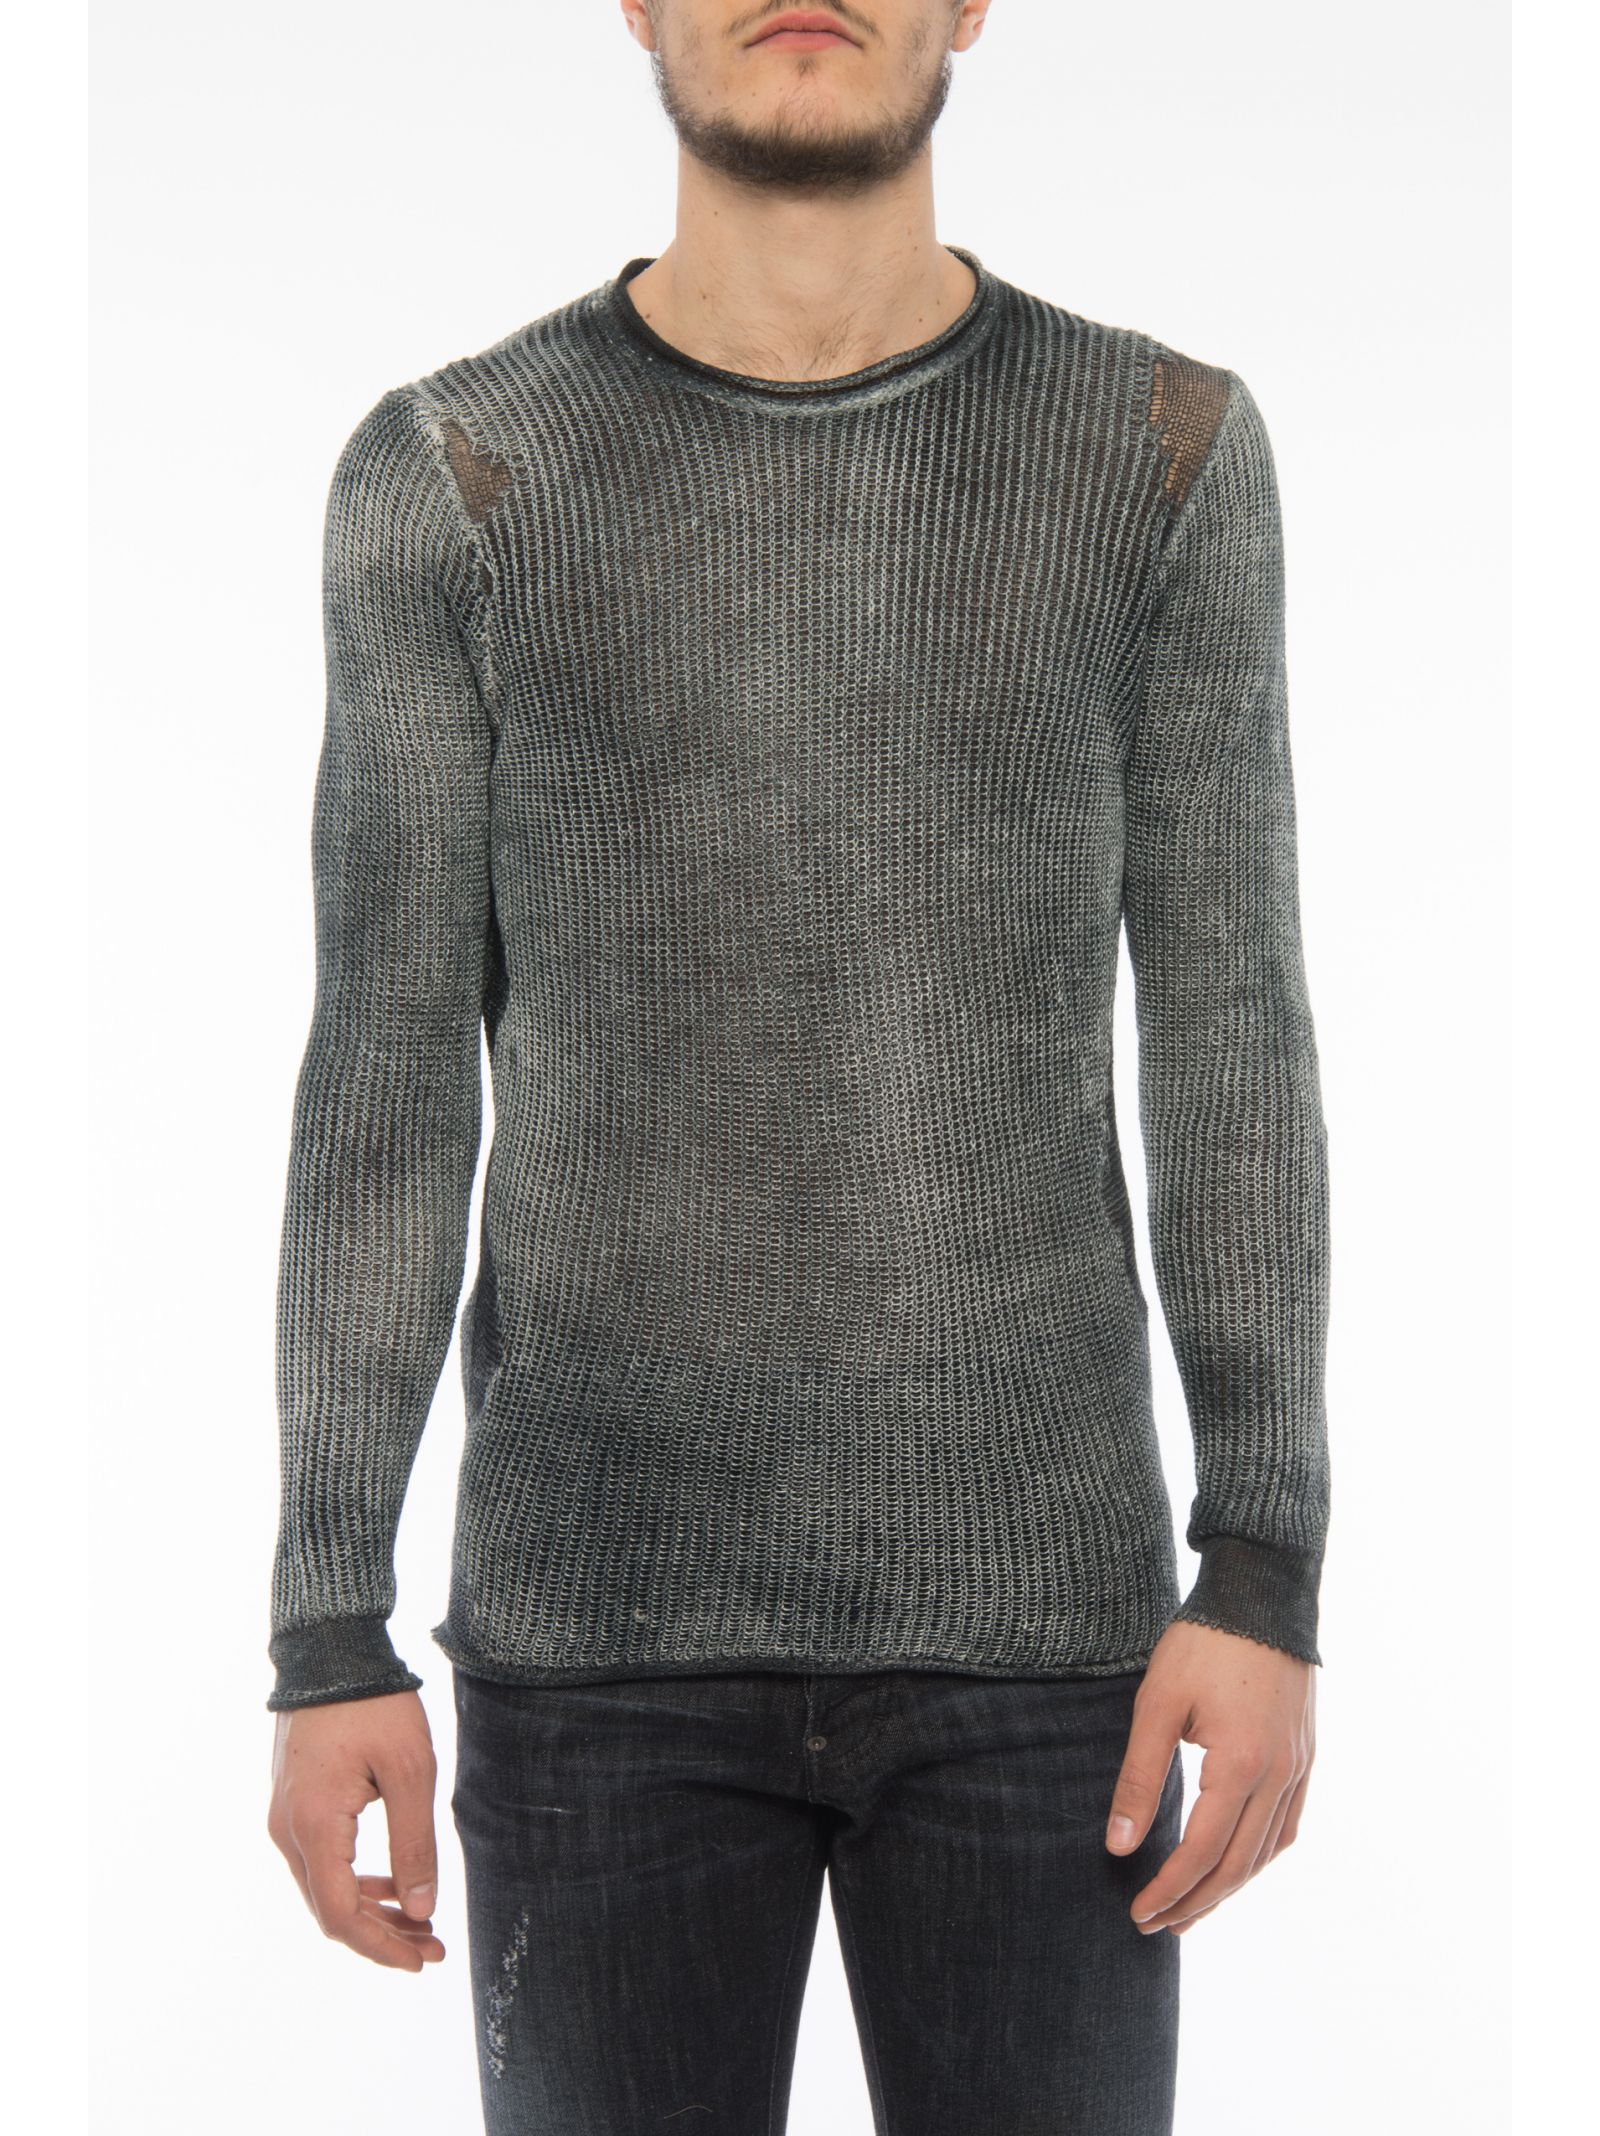 Painted Waffle Knit Pullover